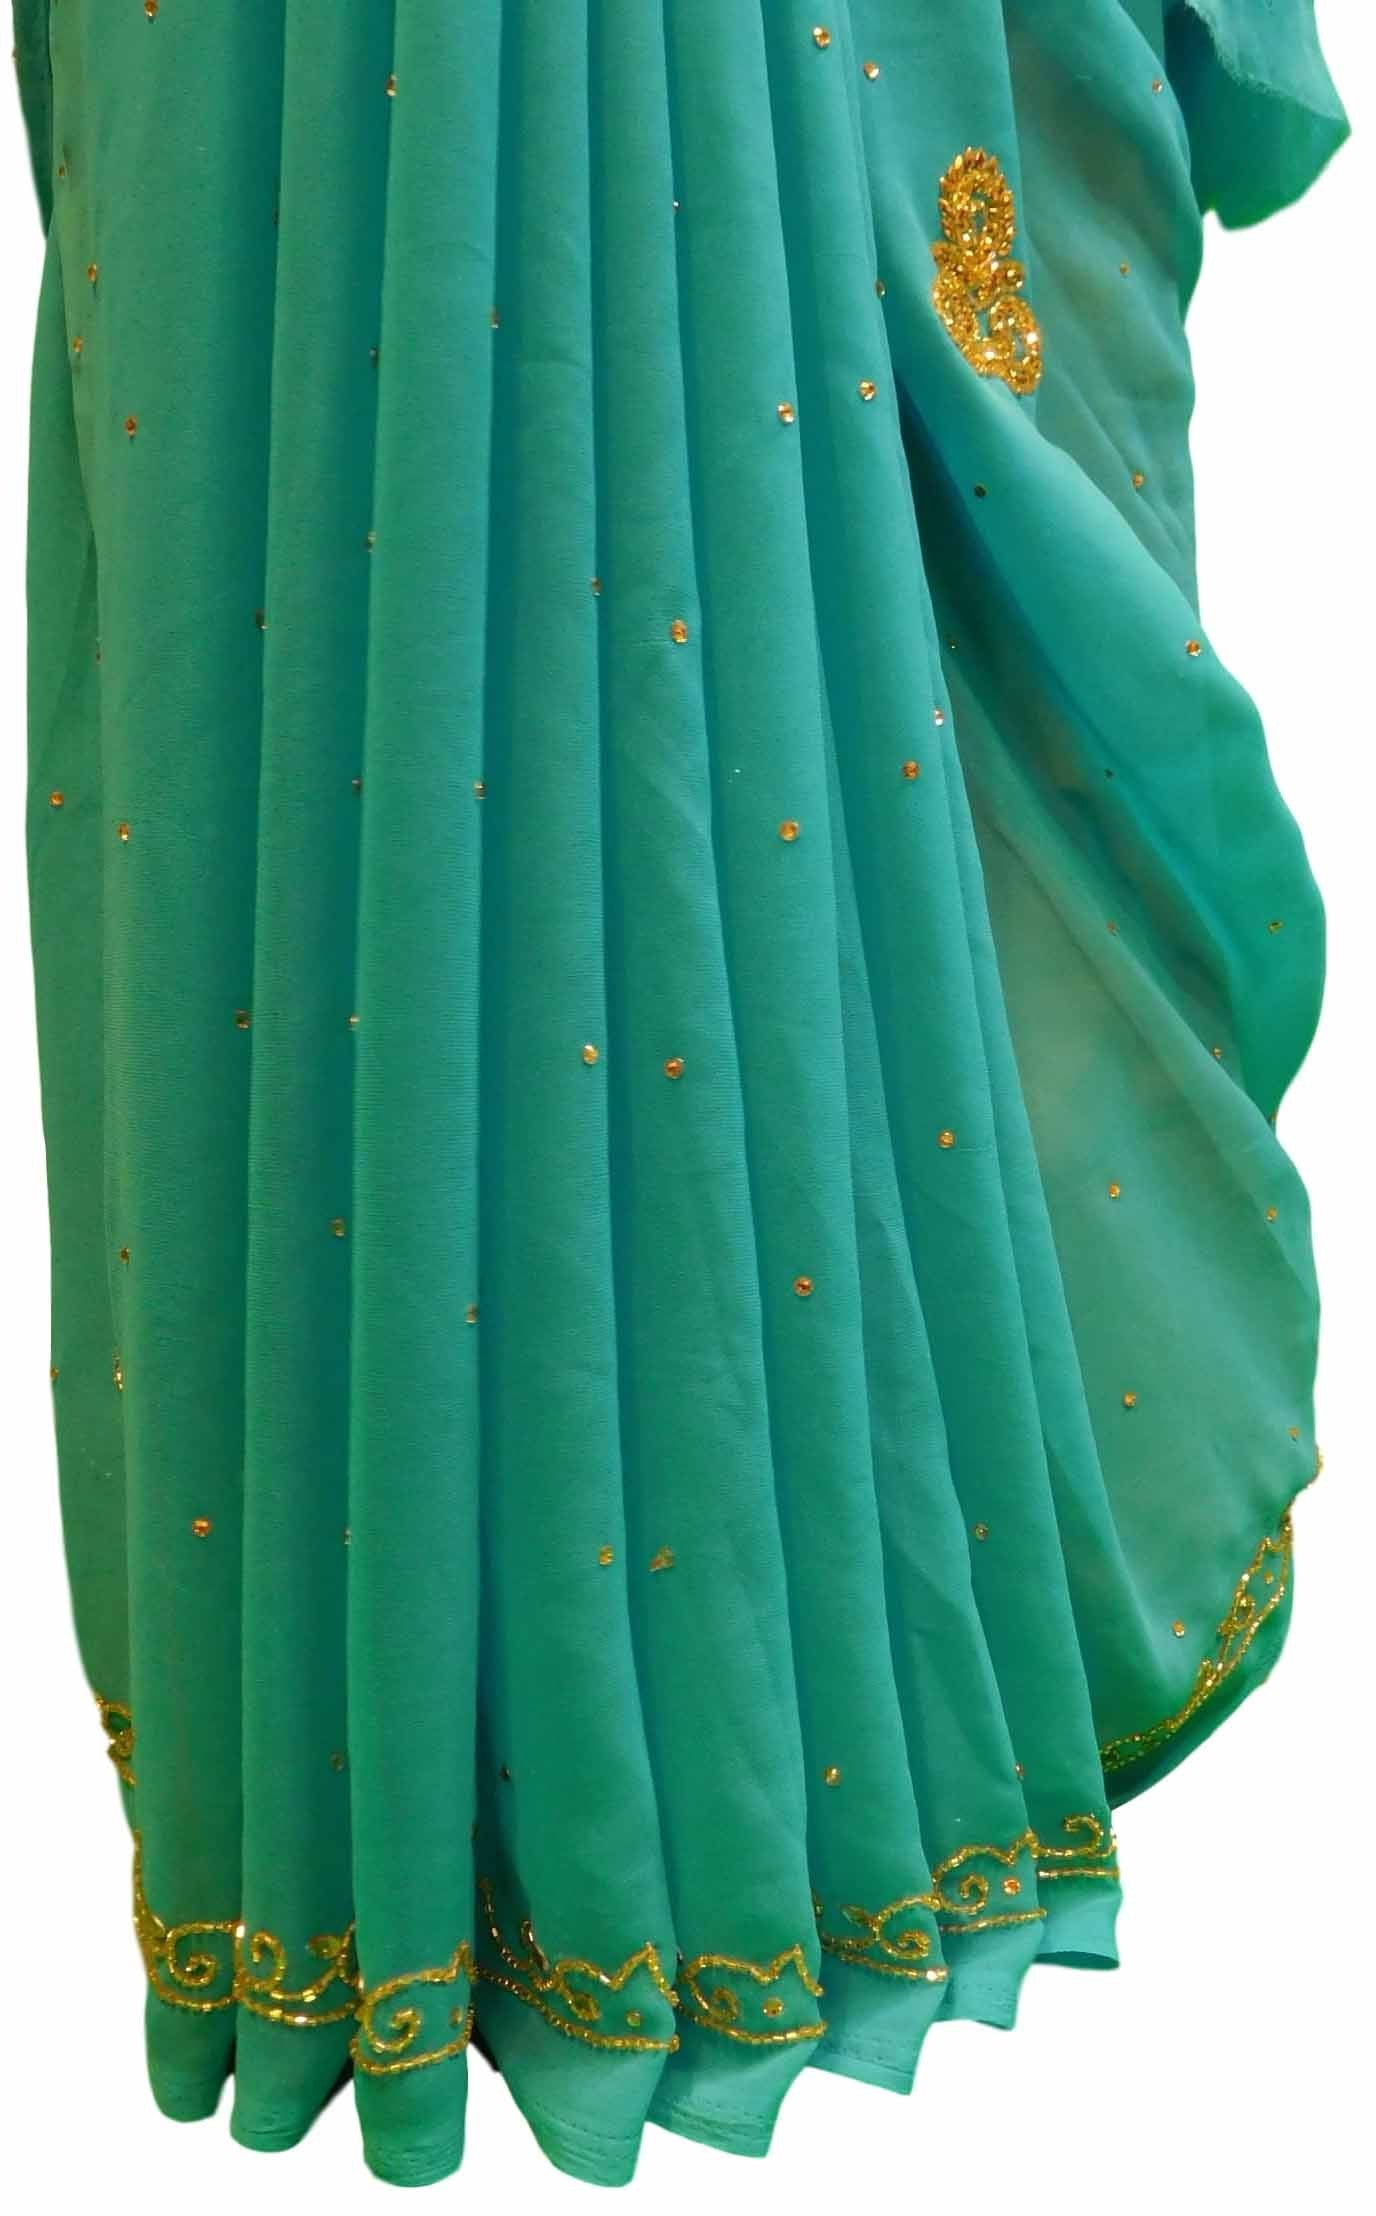 Blue Designer Georgette Sari Zari, Cutdana Thread Embroidery Work Saree